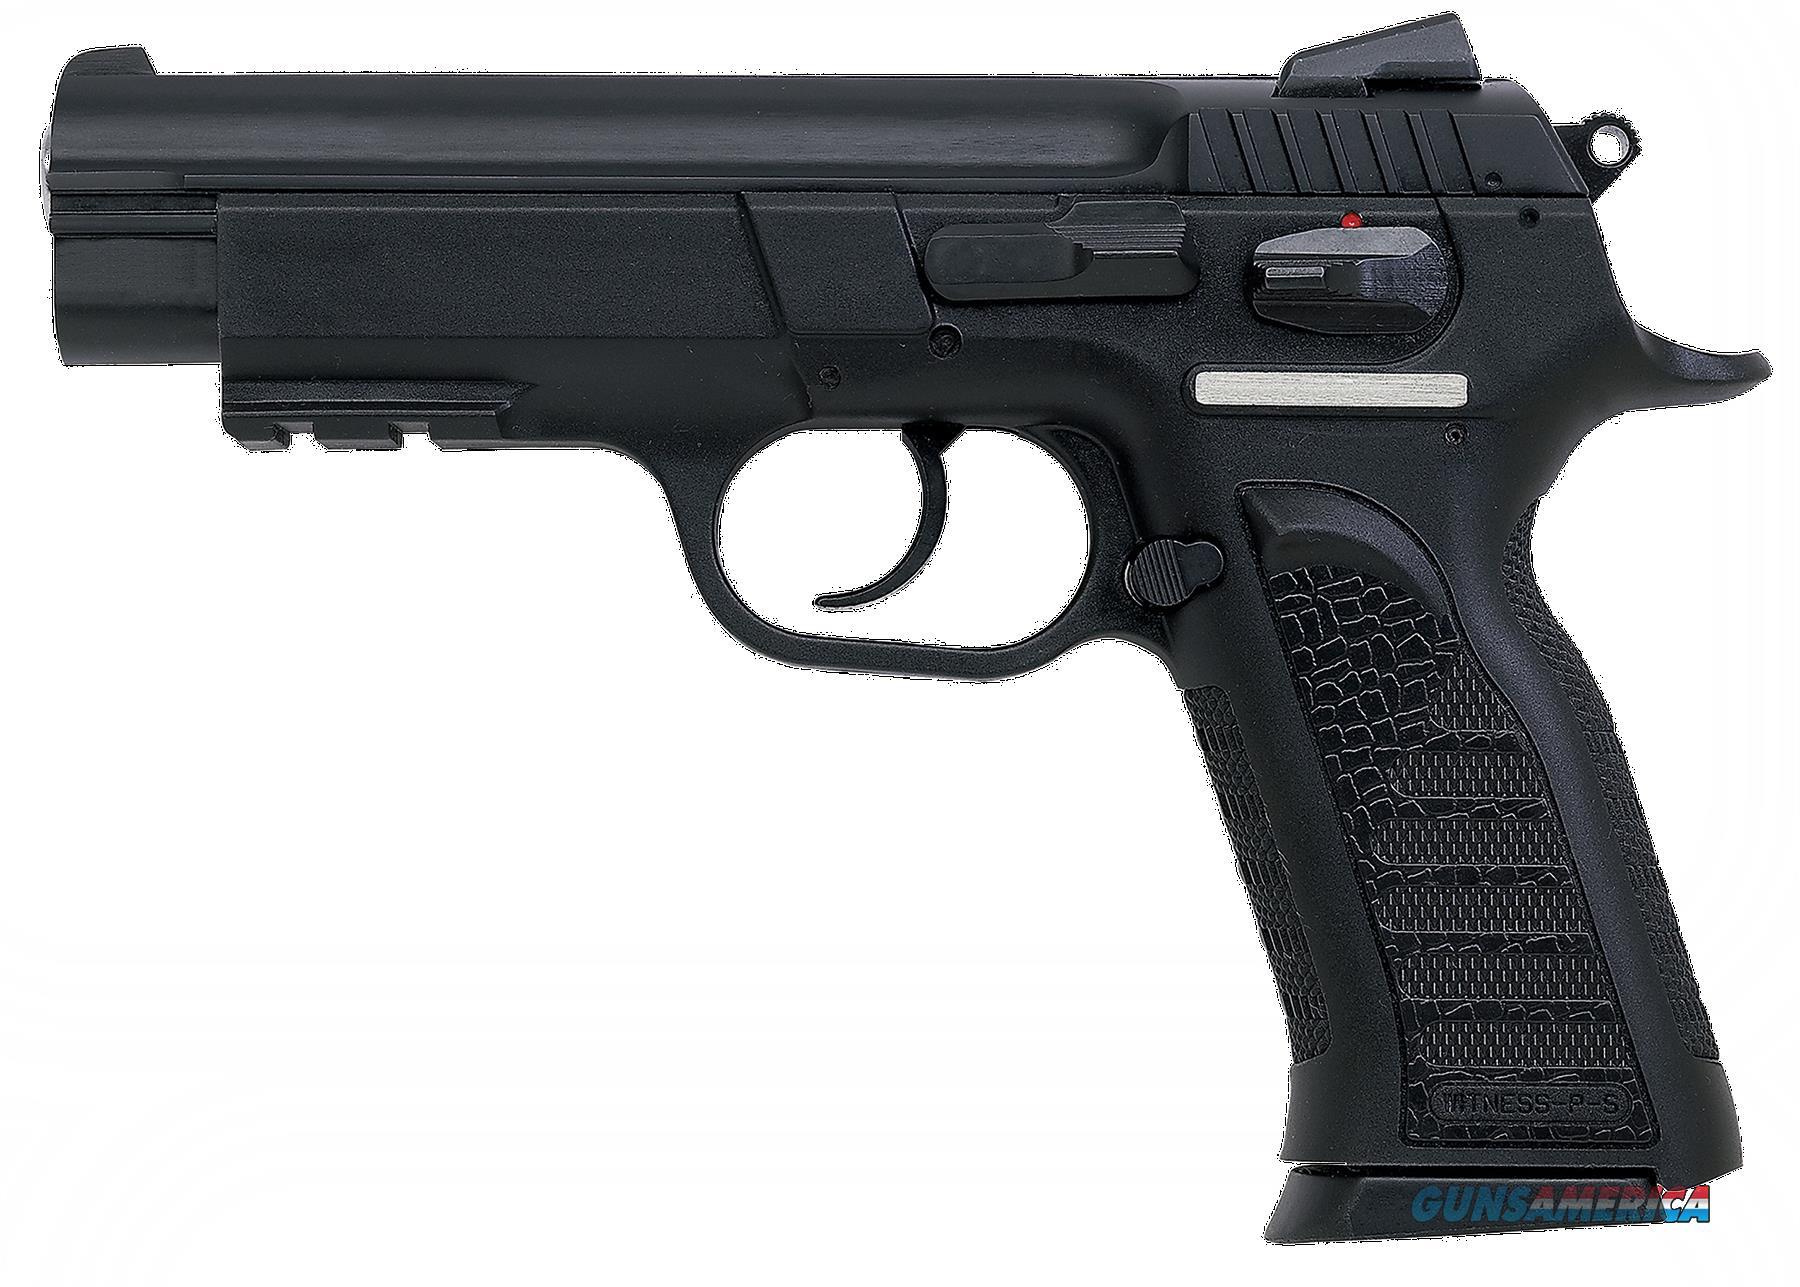 "EAA 999103 Witness Polymer Full Size 40 S&W 4.5"" 14+1 Poly Grip/Frame Blk  Guns > Pistols > EAA Pistols > Other"